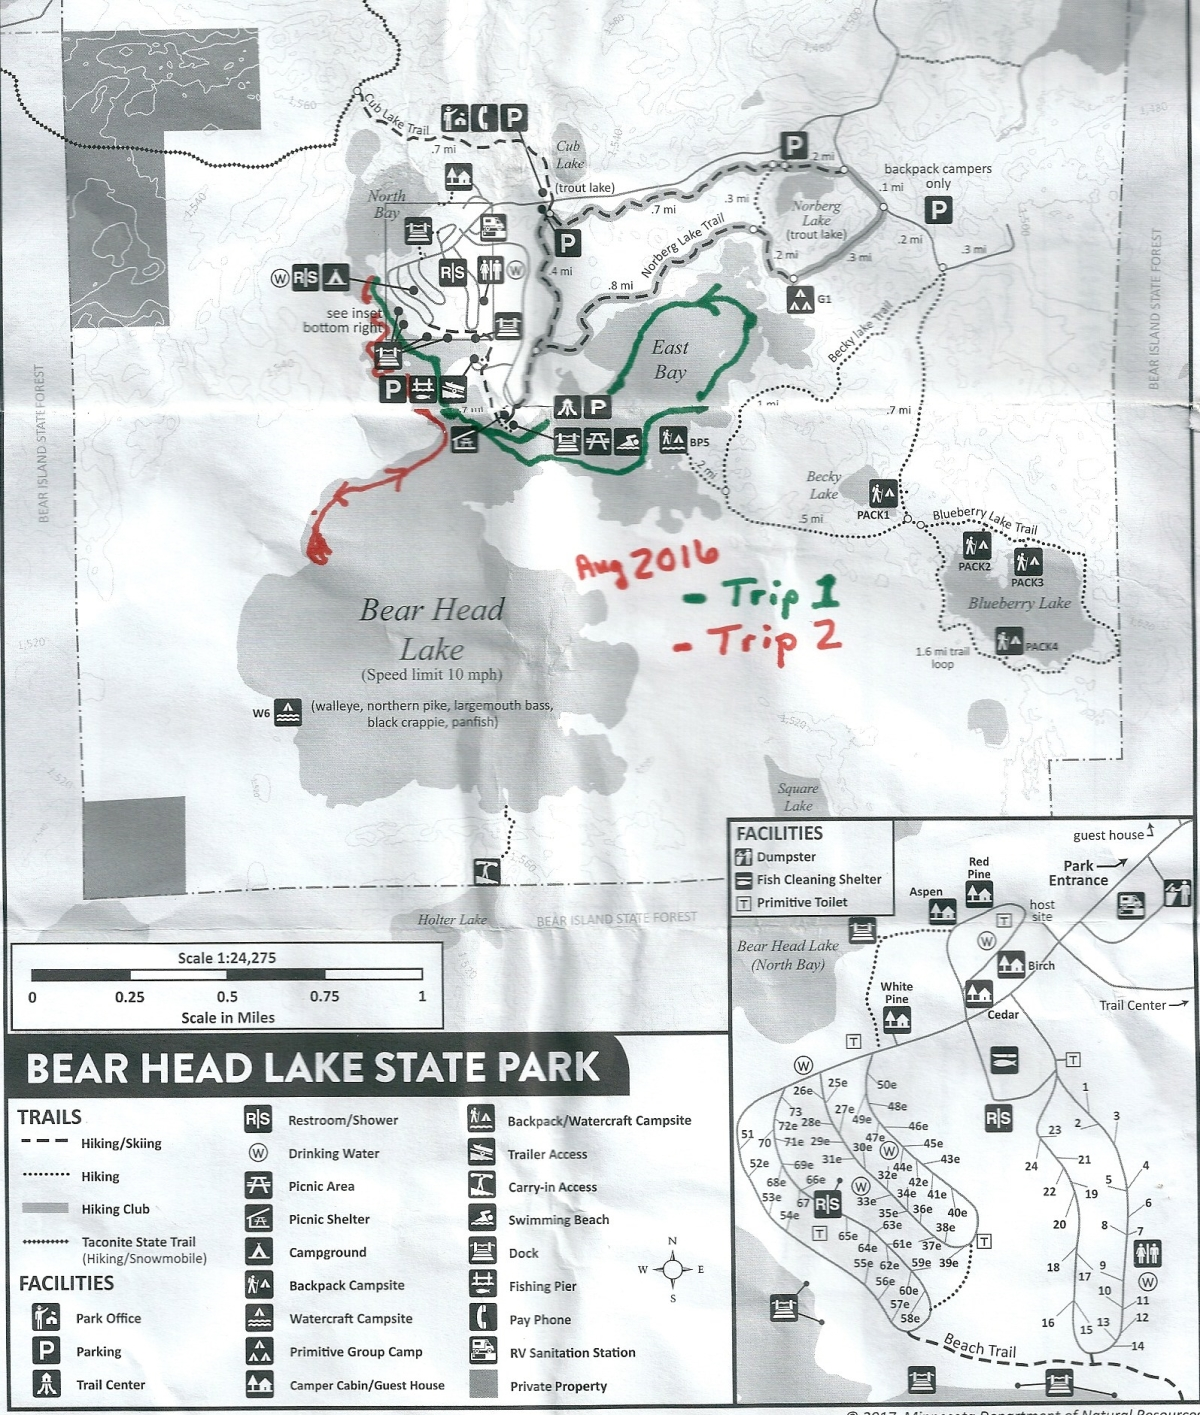 BearHeadLake State Park map0001